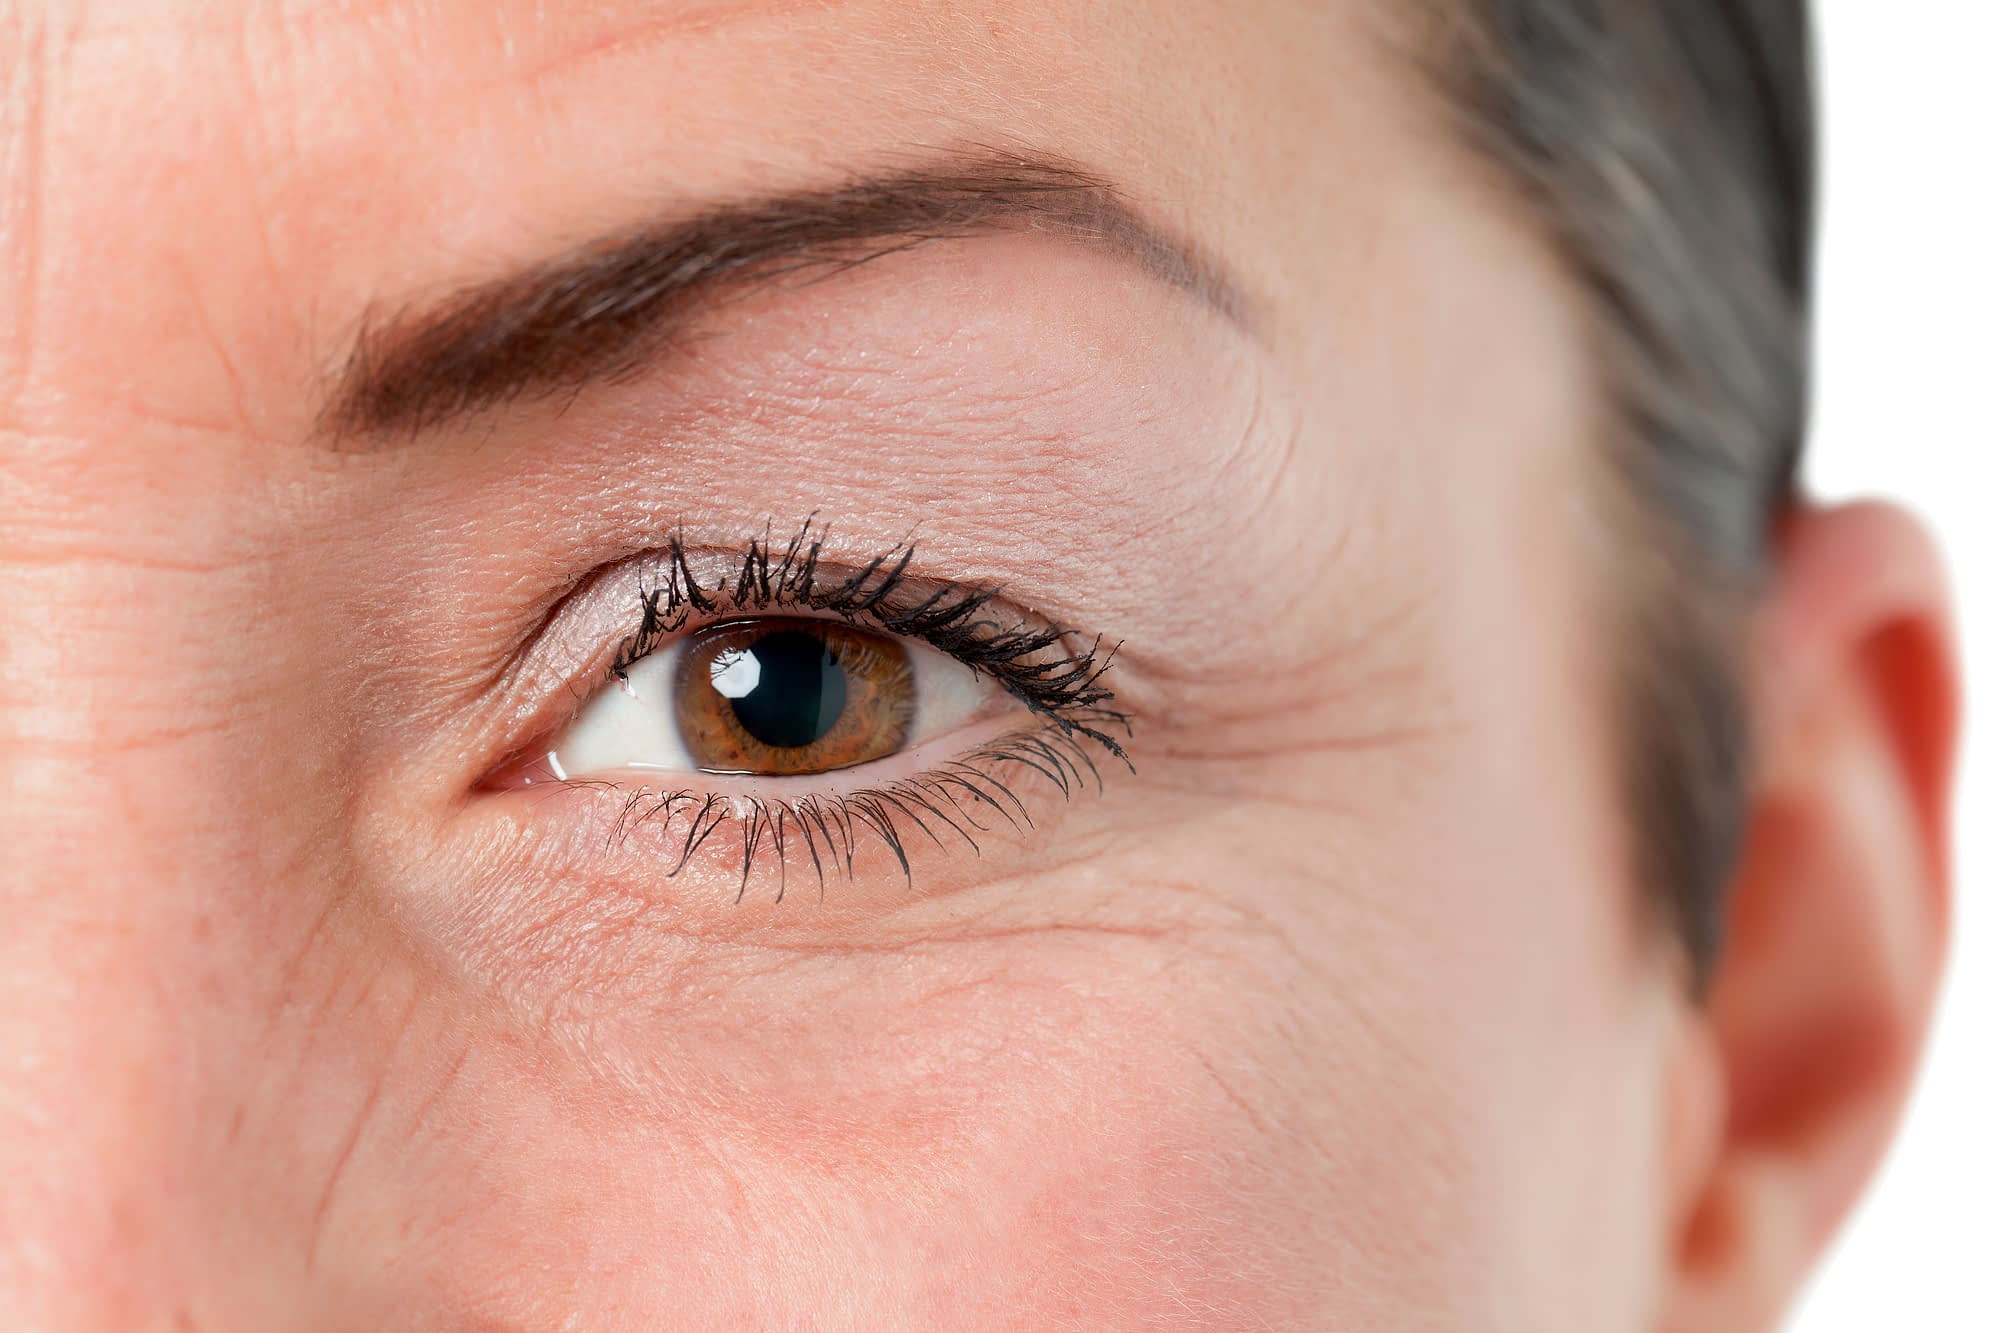 blepharoplasty eyelid surgery nj